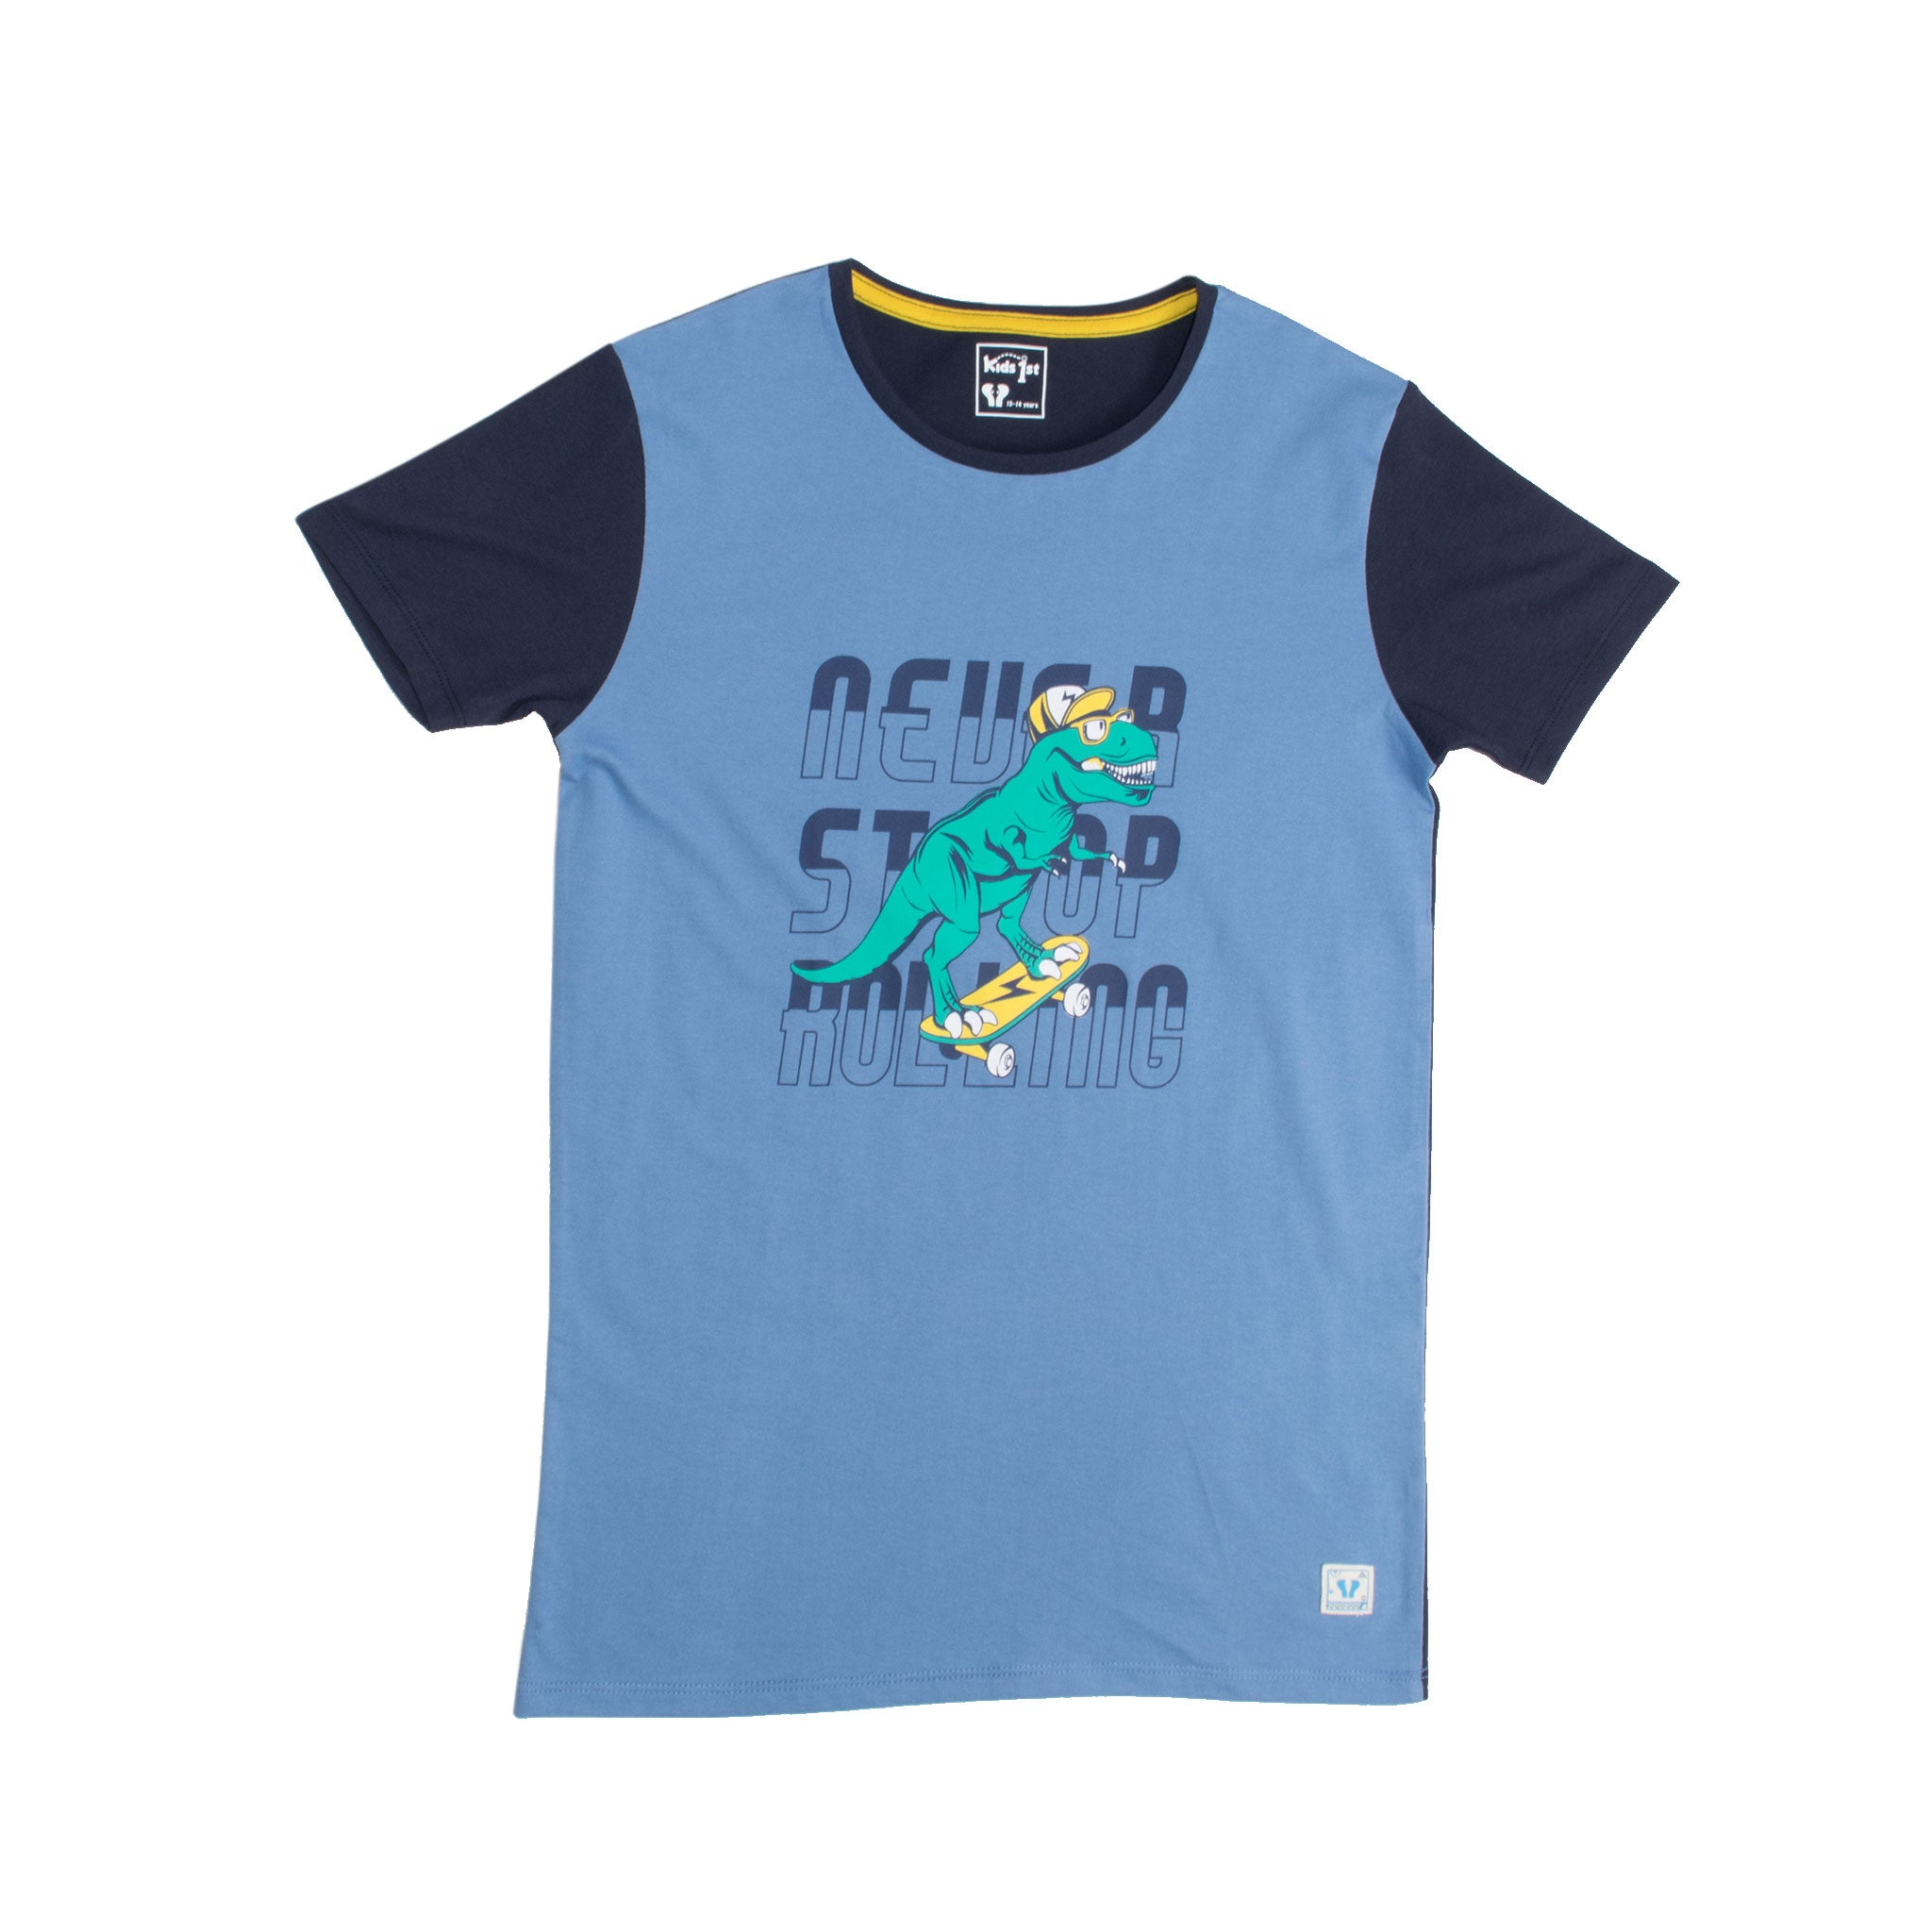 BOYS S/S GRAPHIC TEE-SMOKE GREY/NAVY-1108 - Export Mall